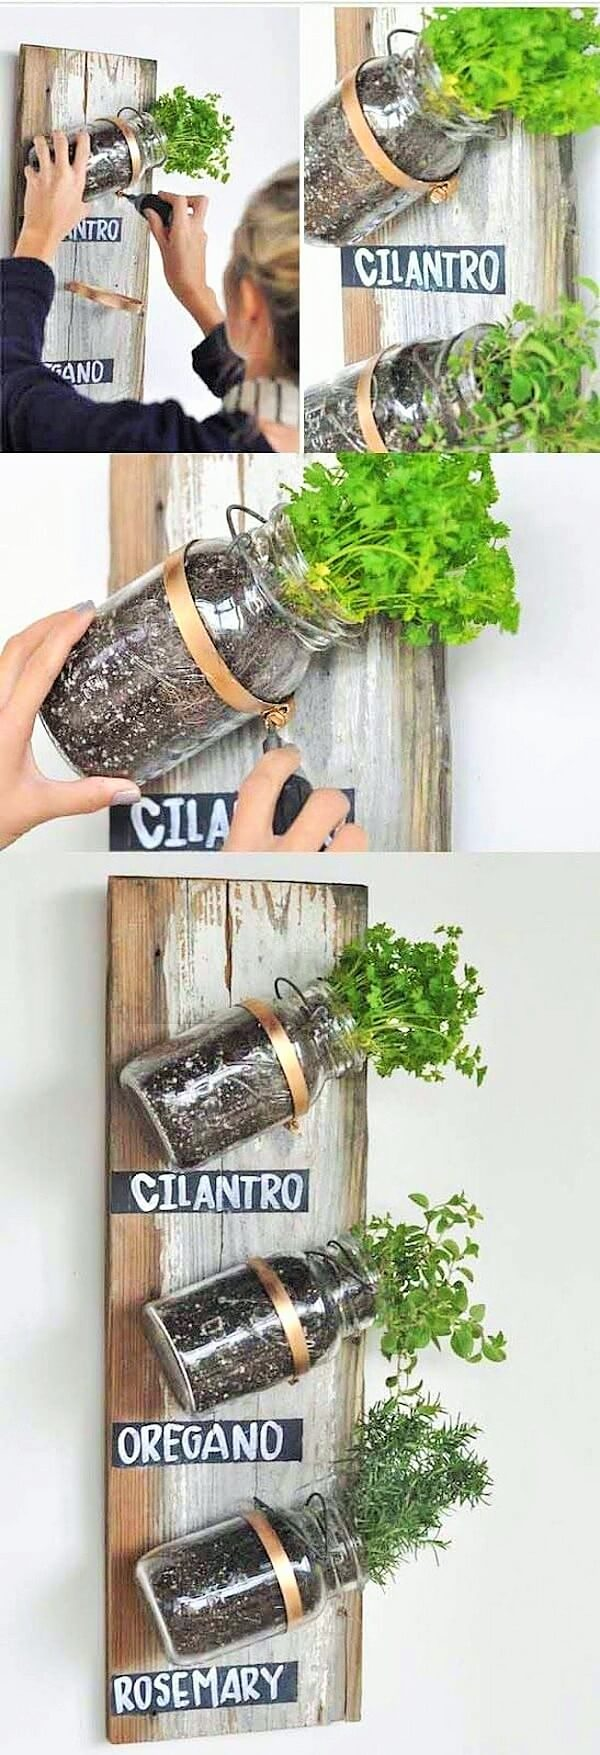 DIY-vertical-garden-ideas-11